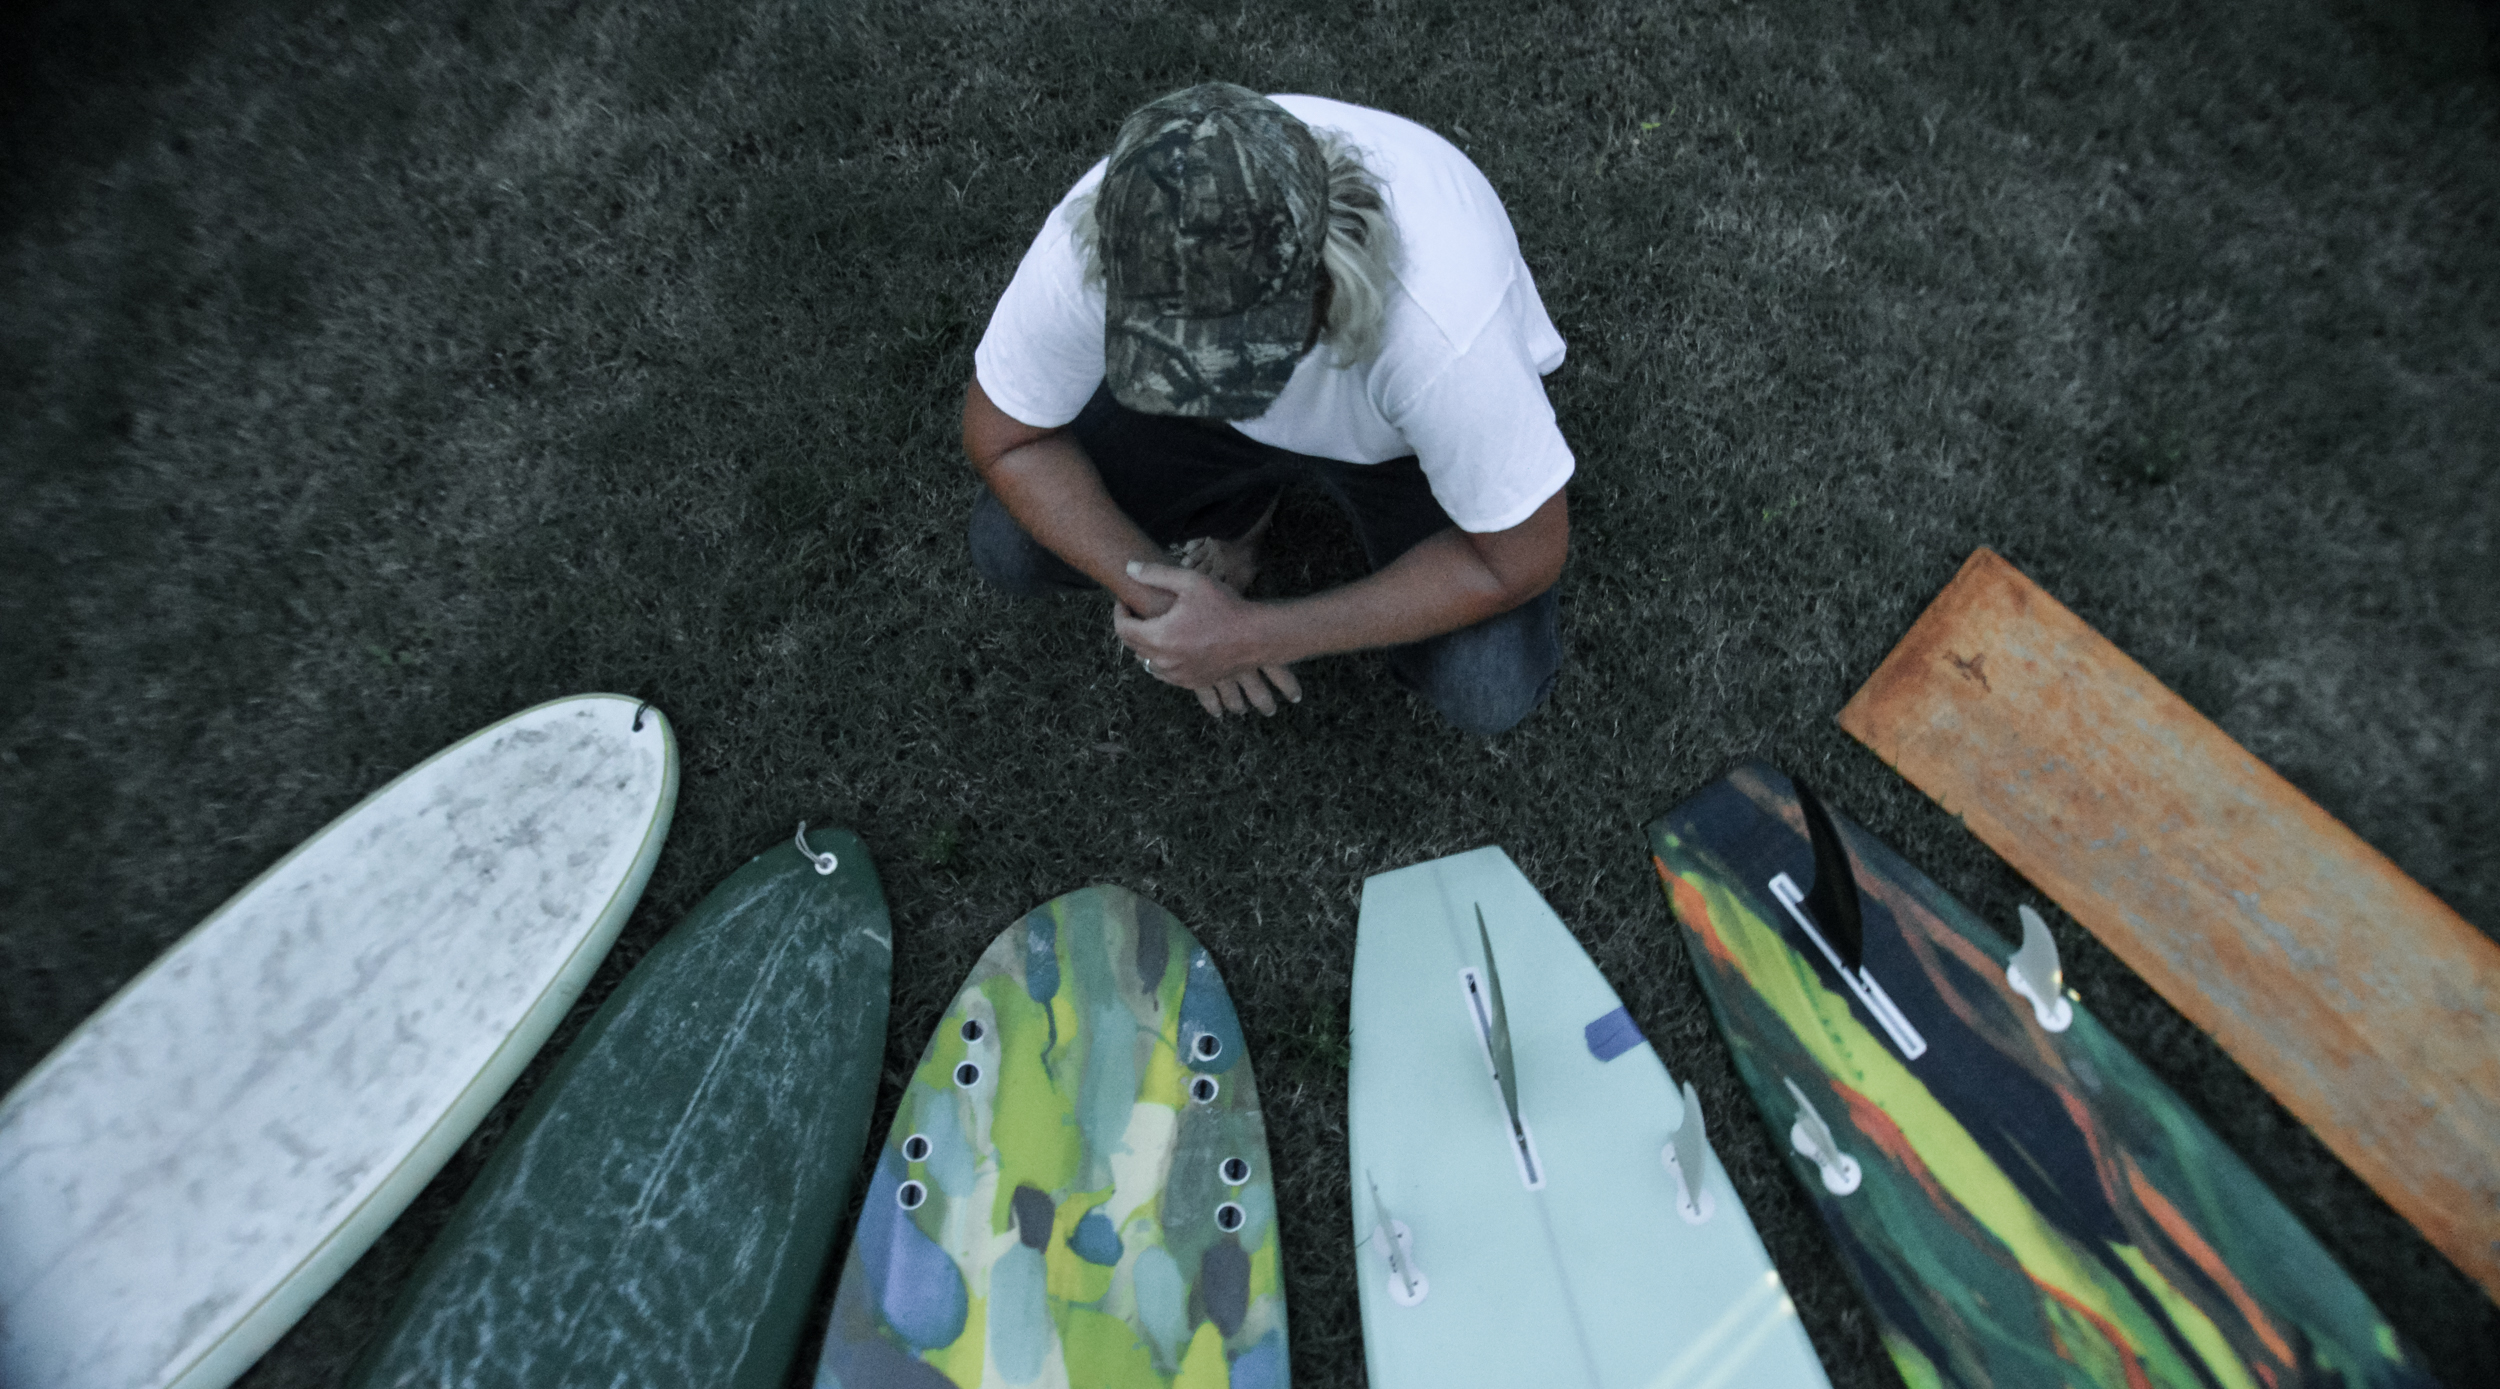 Brandon with his self-shaped and glassed boards, Cocoa beach 2015  Photo: Siren Williams